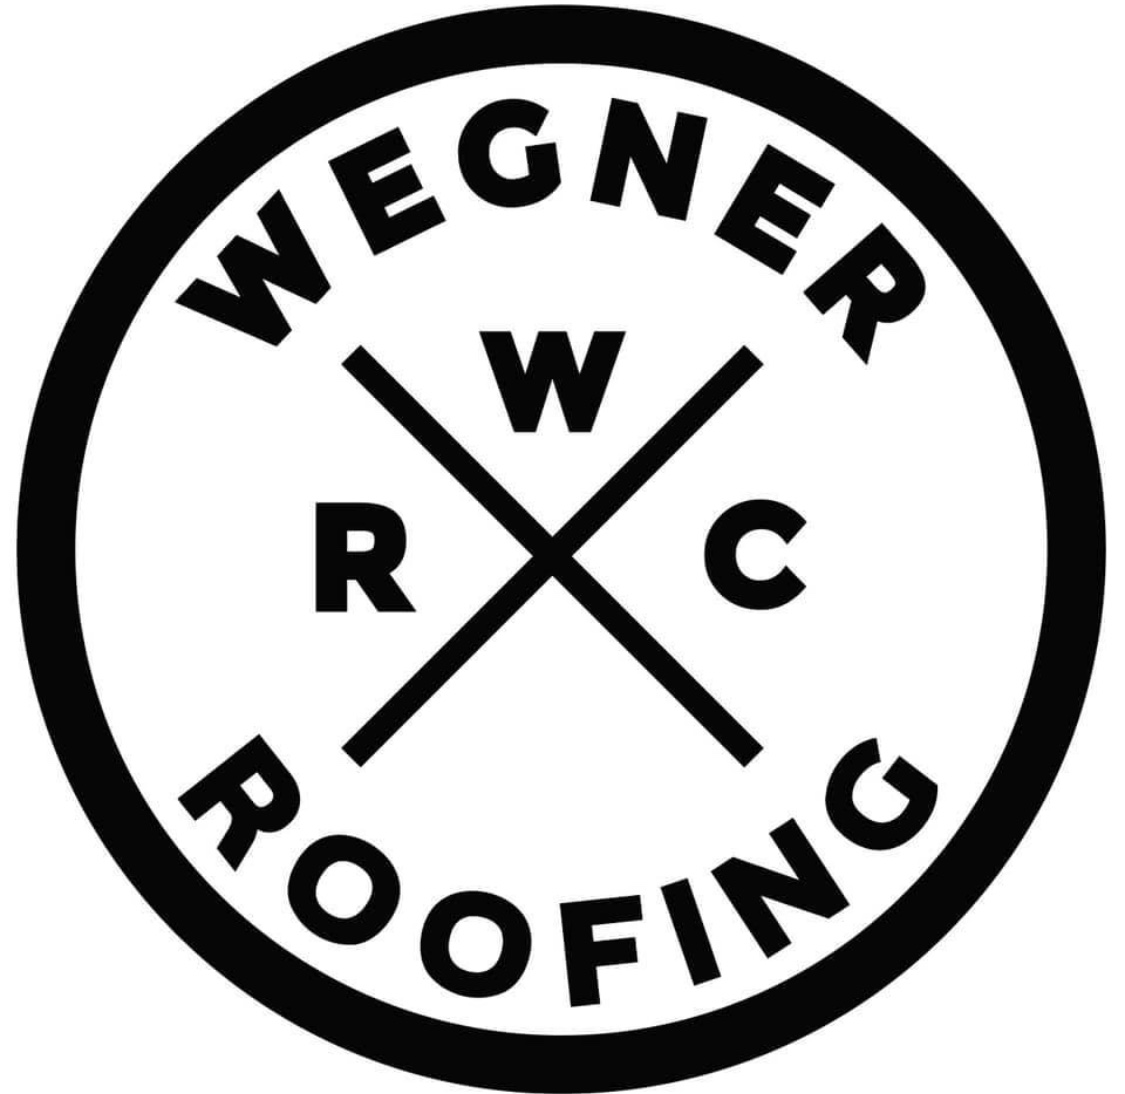 Wegner Roofing and Construction Highlights Their Roof Ventilation System Services